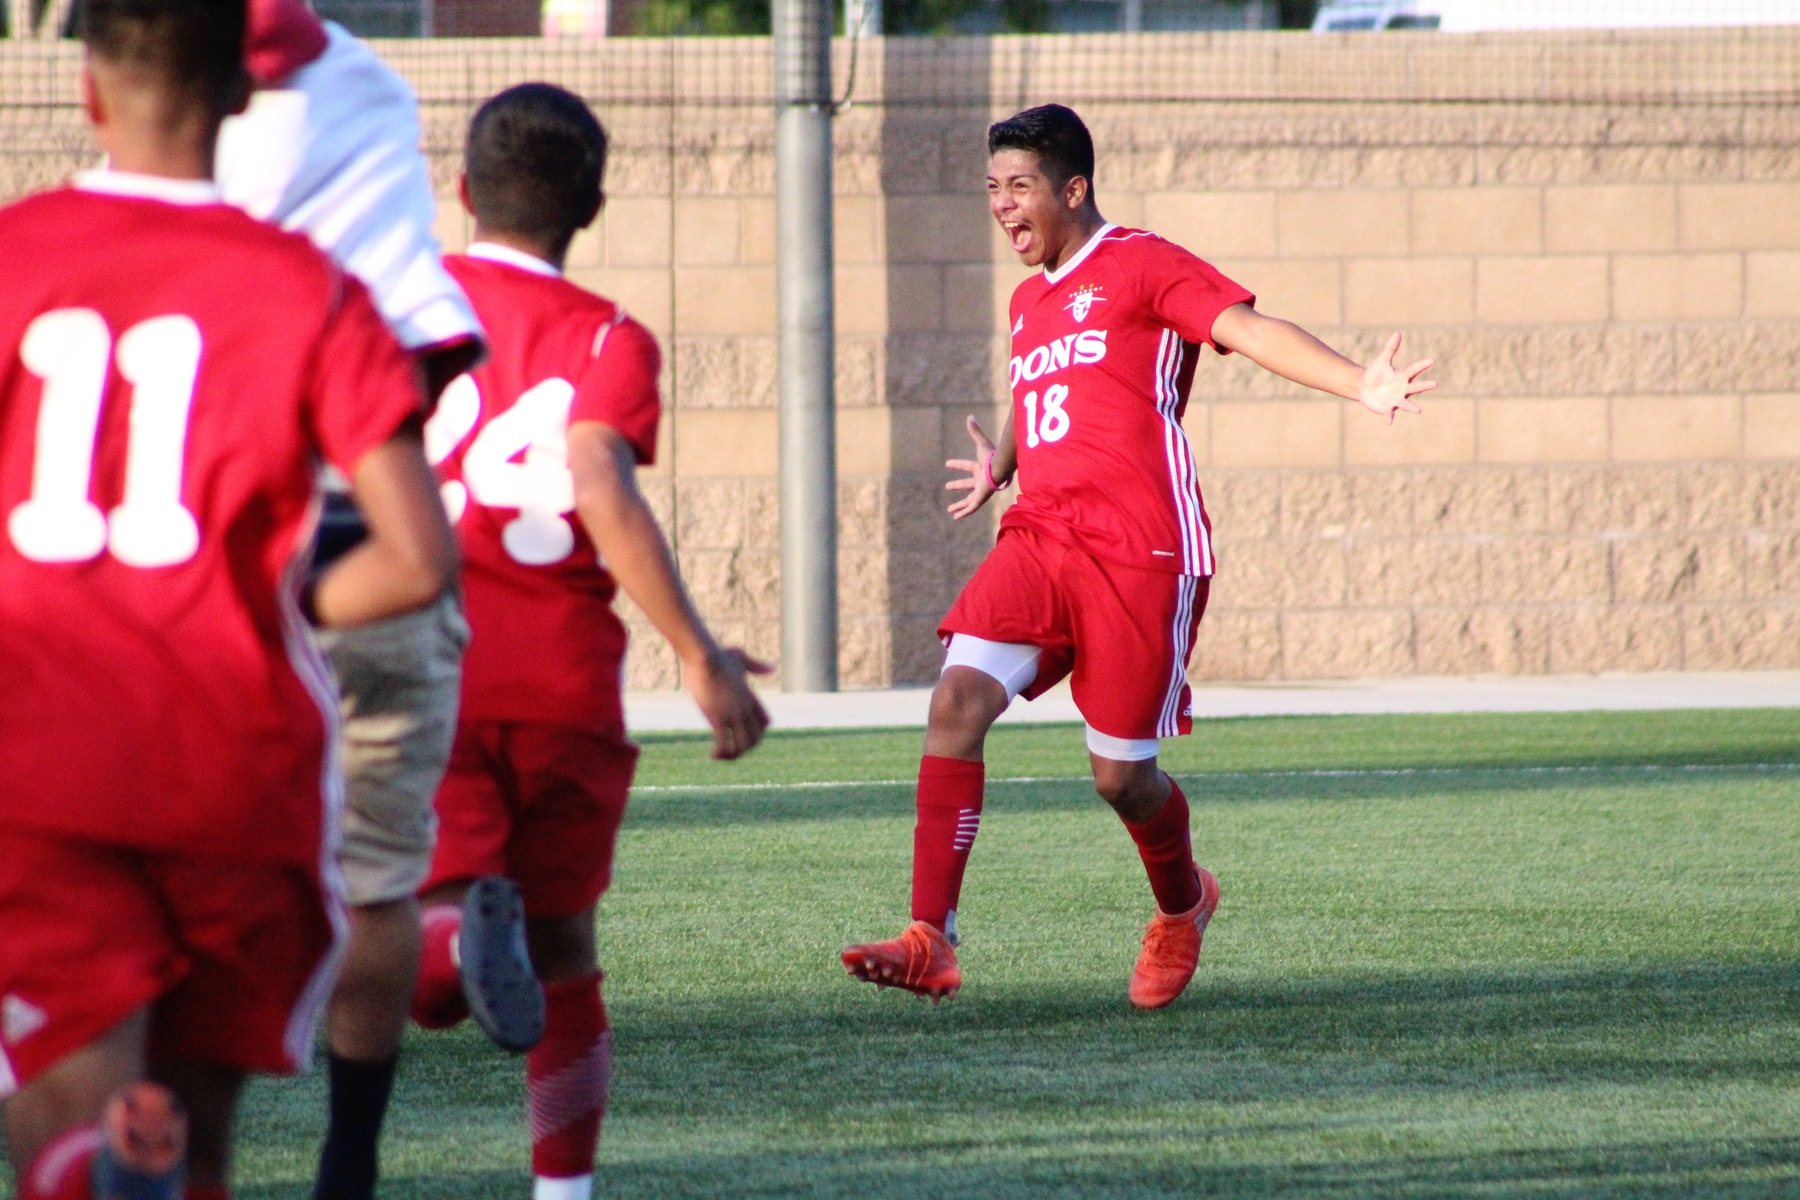 Dons Come Back to Win 3-1, Advance to Round Two of CCCAA Playoffs